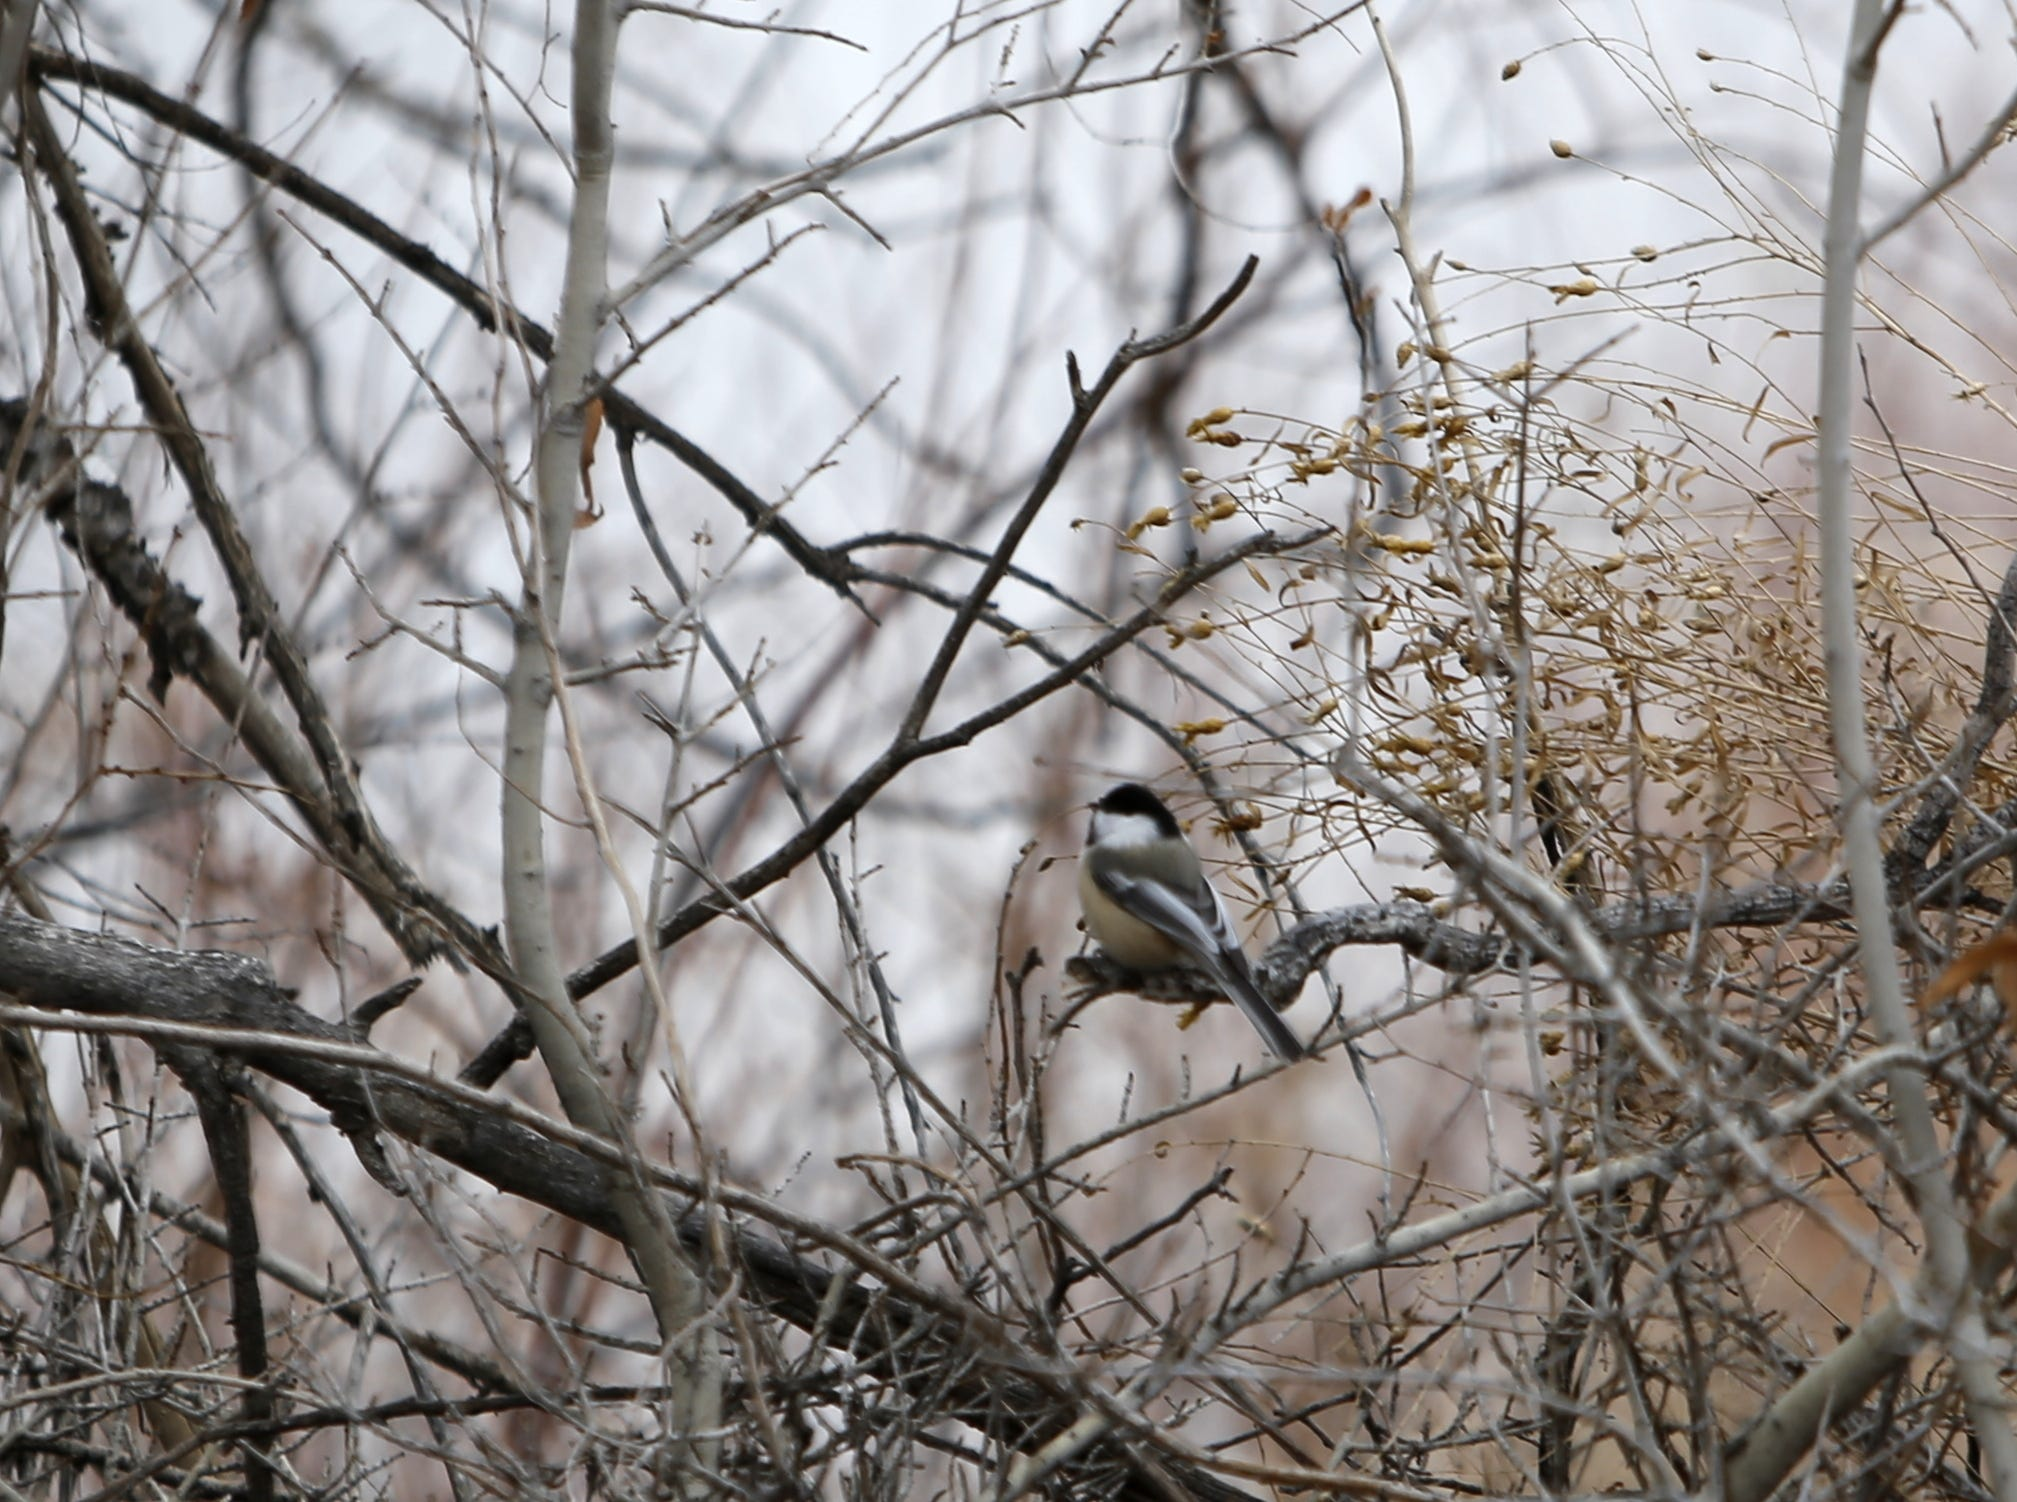 A chickadee sits on a branch, Monday, Dec. 17, 2018, next to the Among the Waters Trail in Farmington.